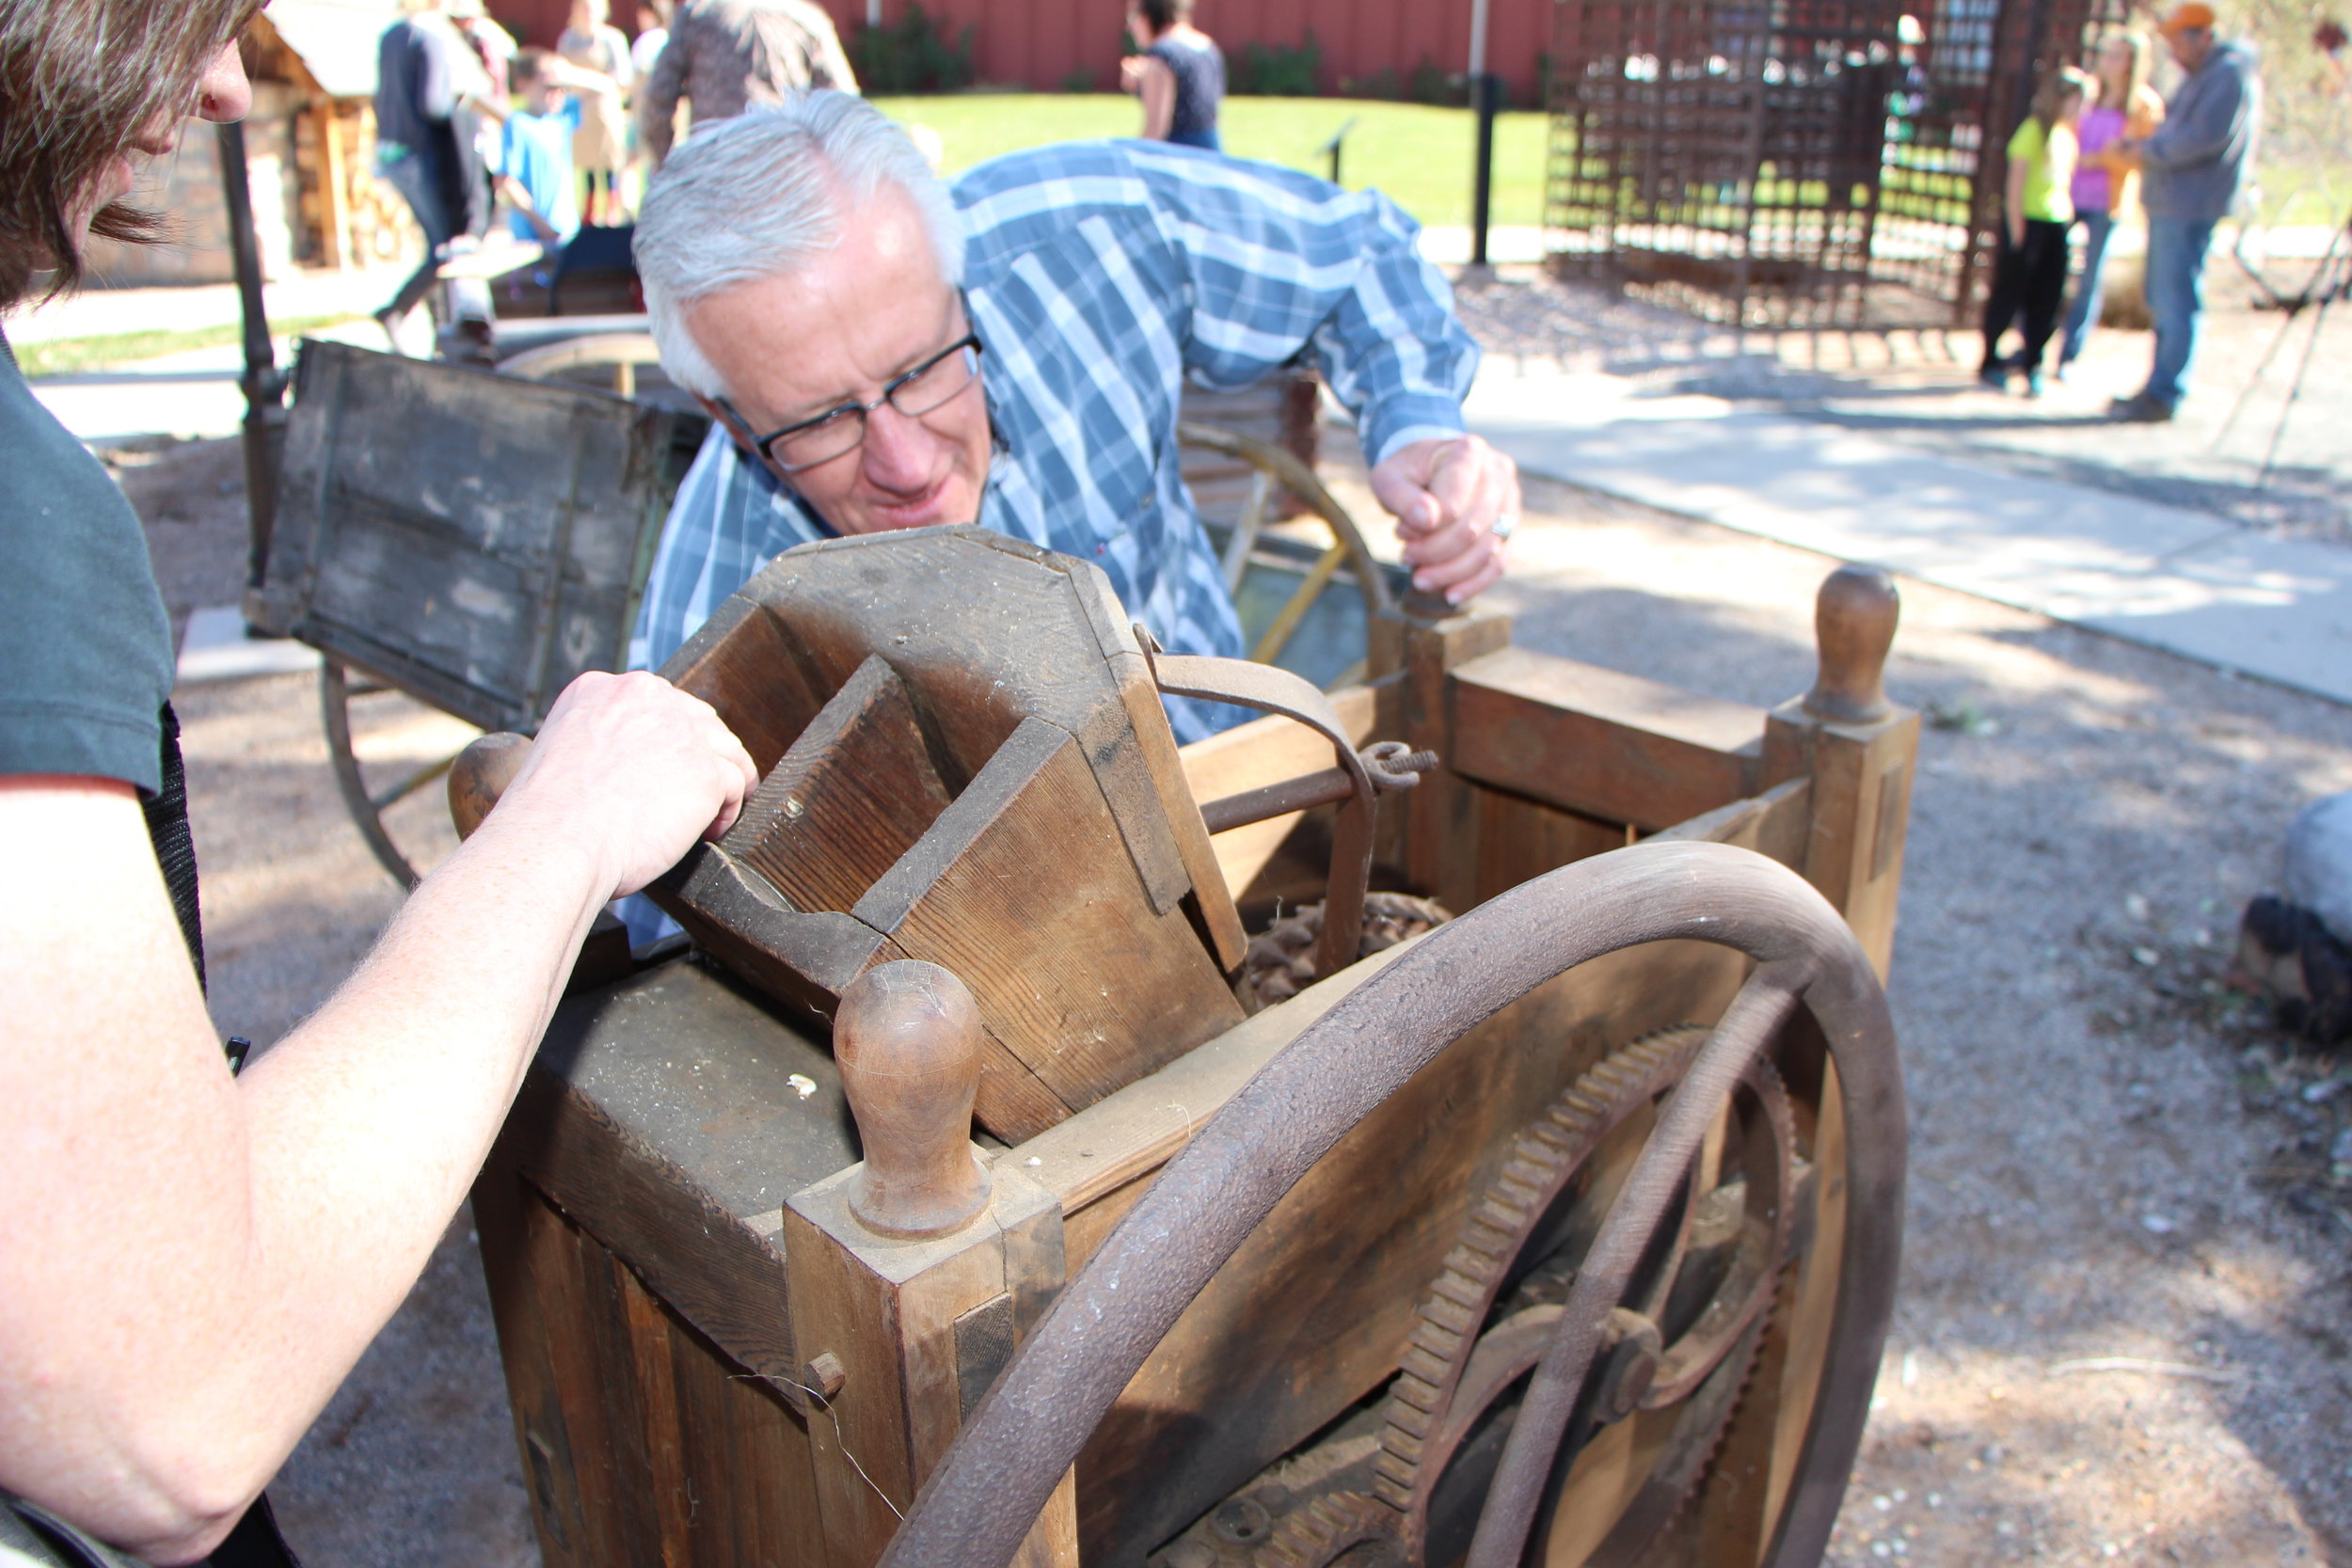 Our historic corn sheller in action.